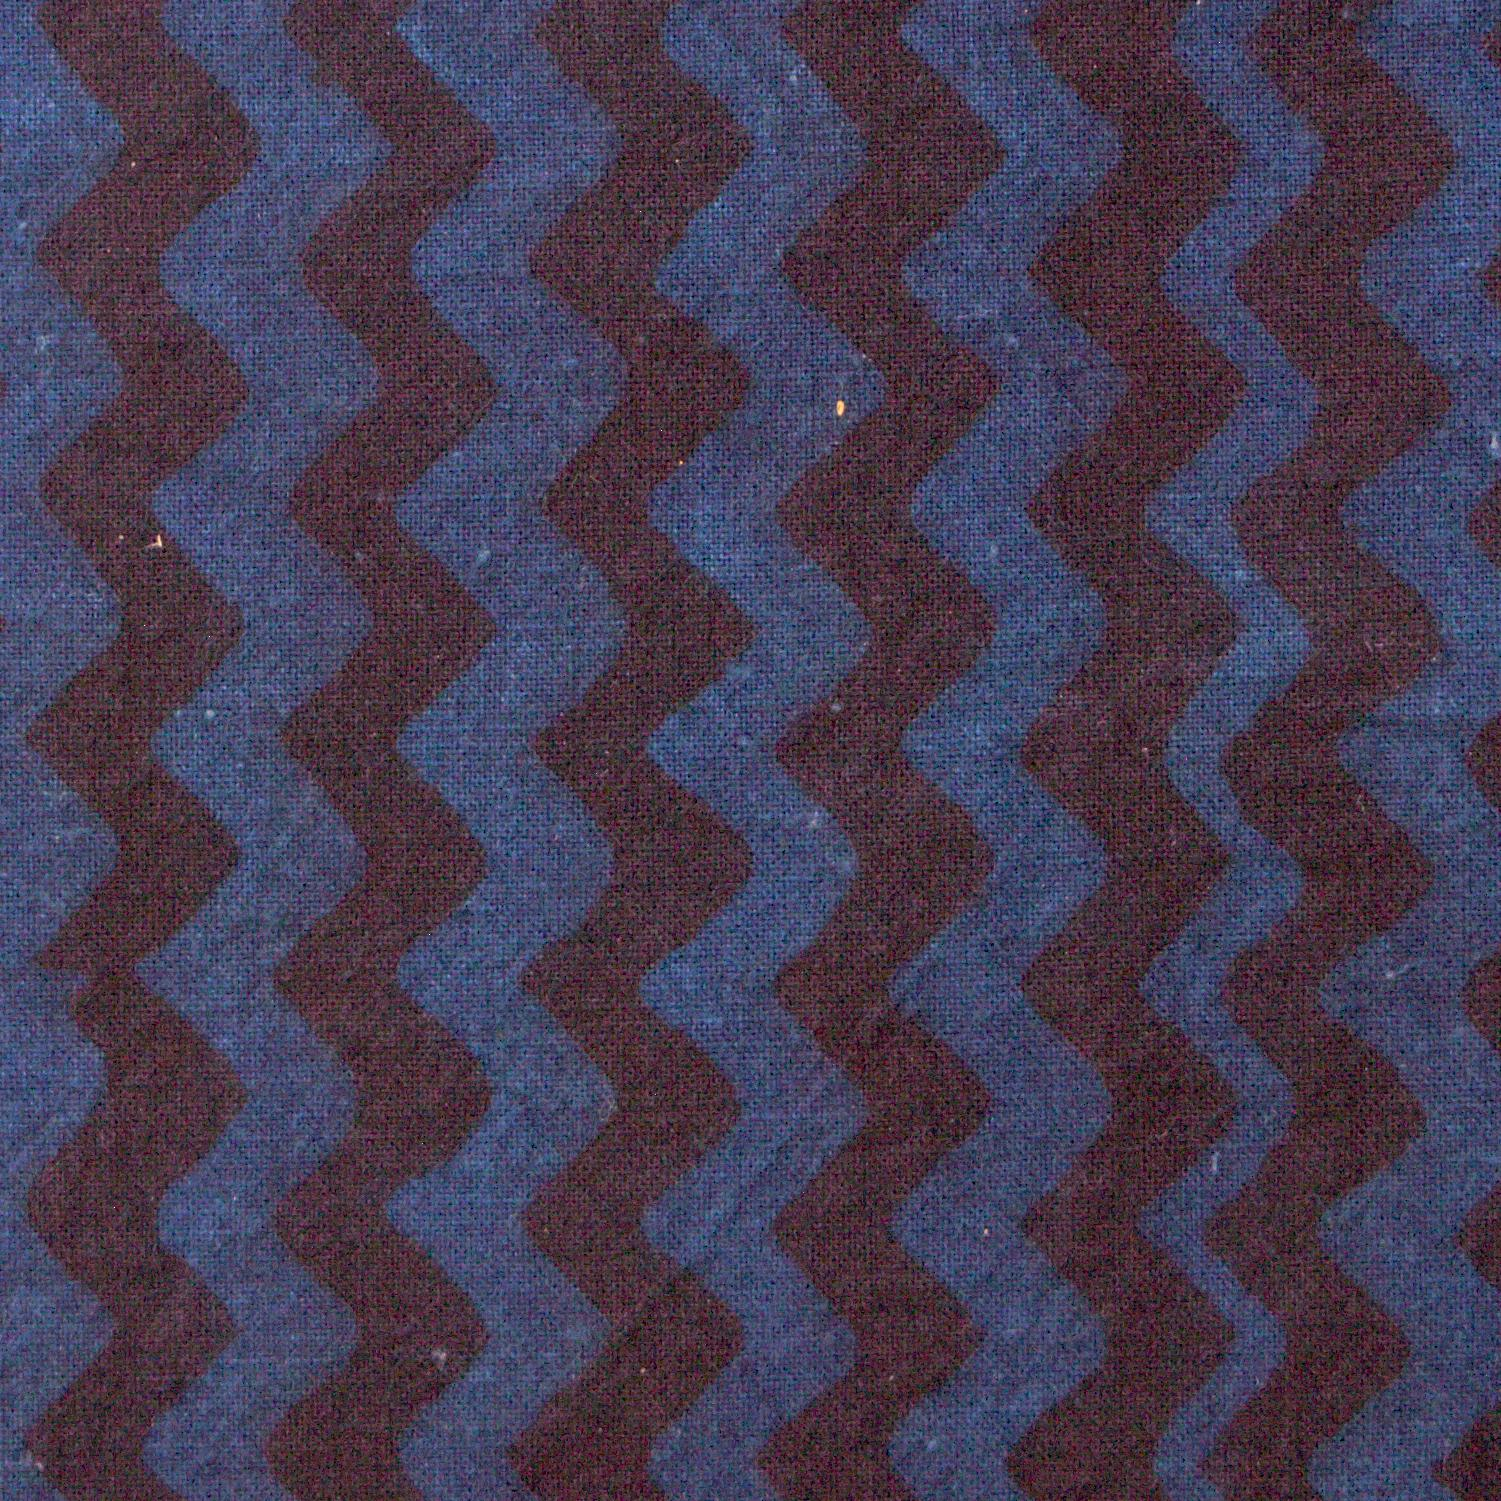 100% Block-Printed Cotton Fabric From India- Ajrak - Indigo Black Zig Zag Print - Close Up